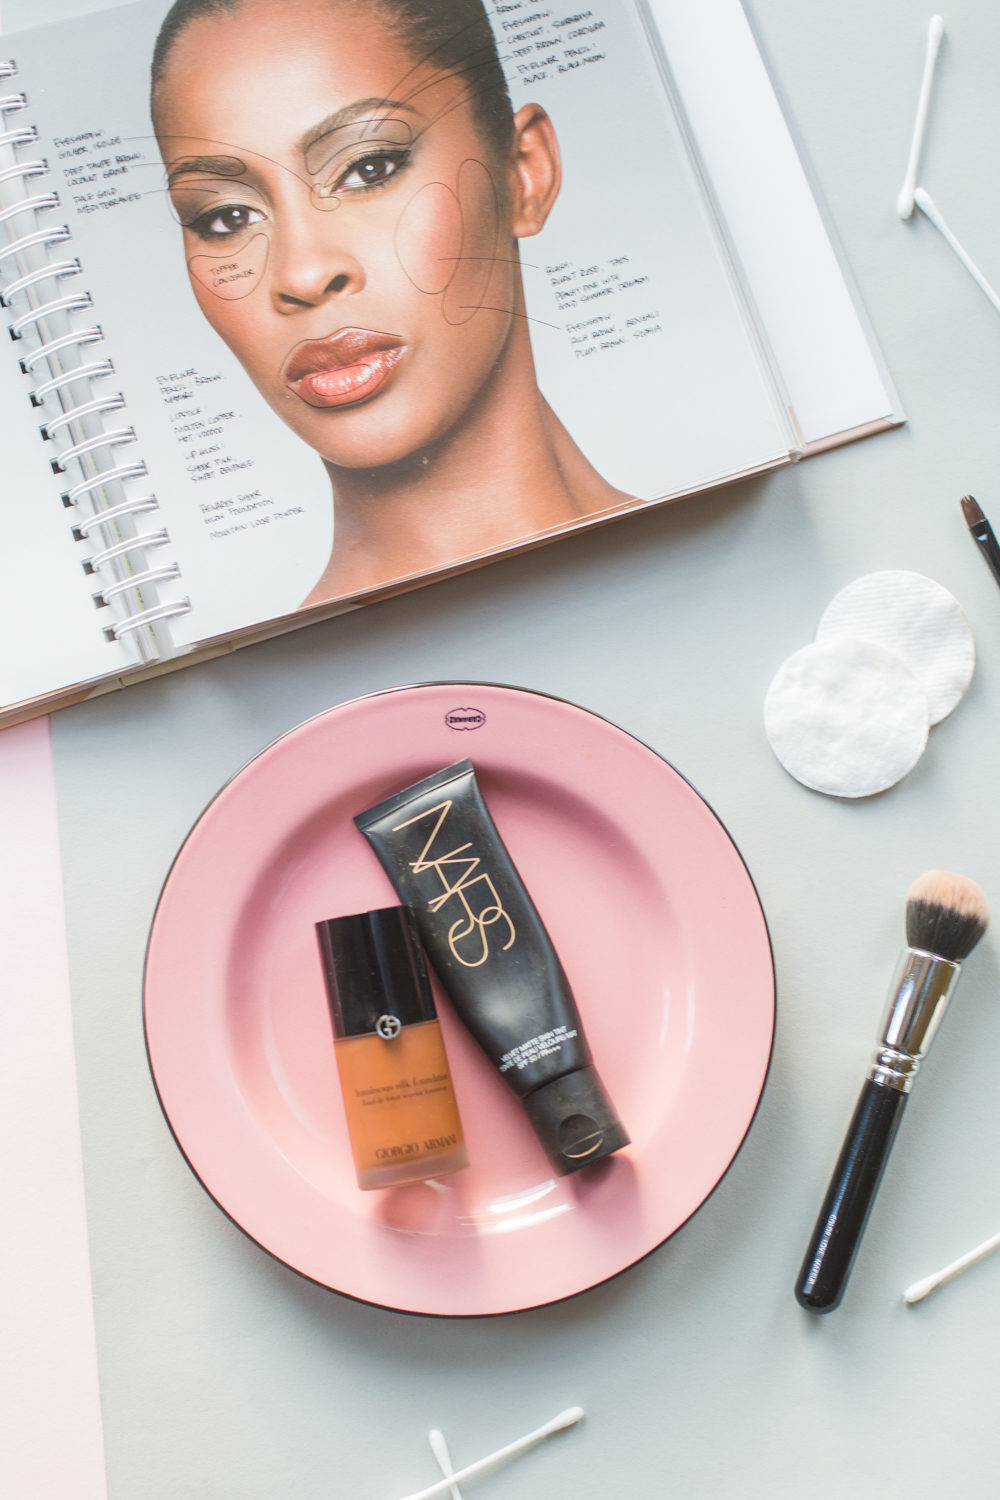 Foundation for darker skin tones